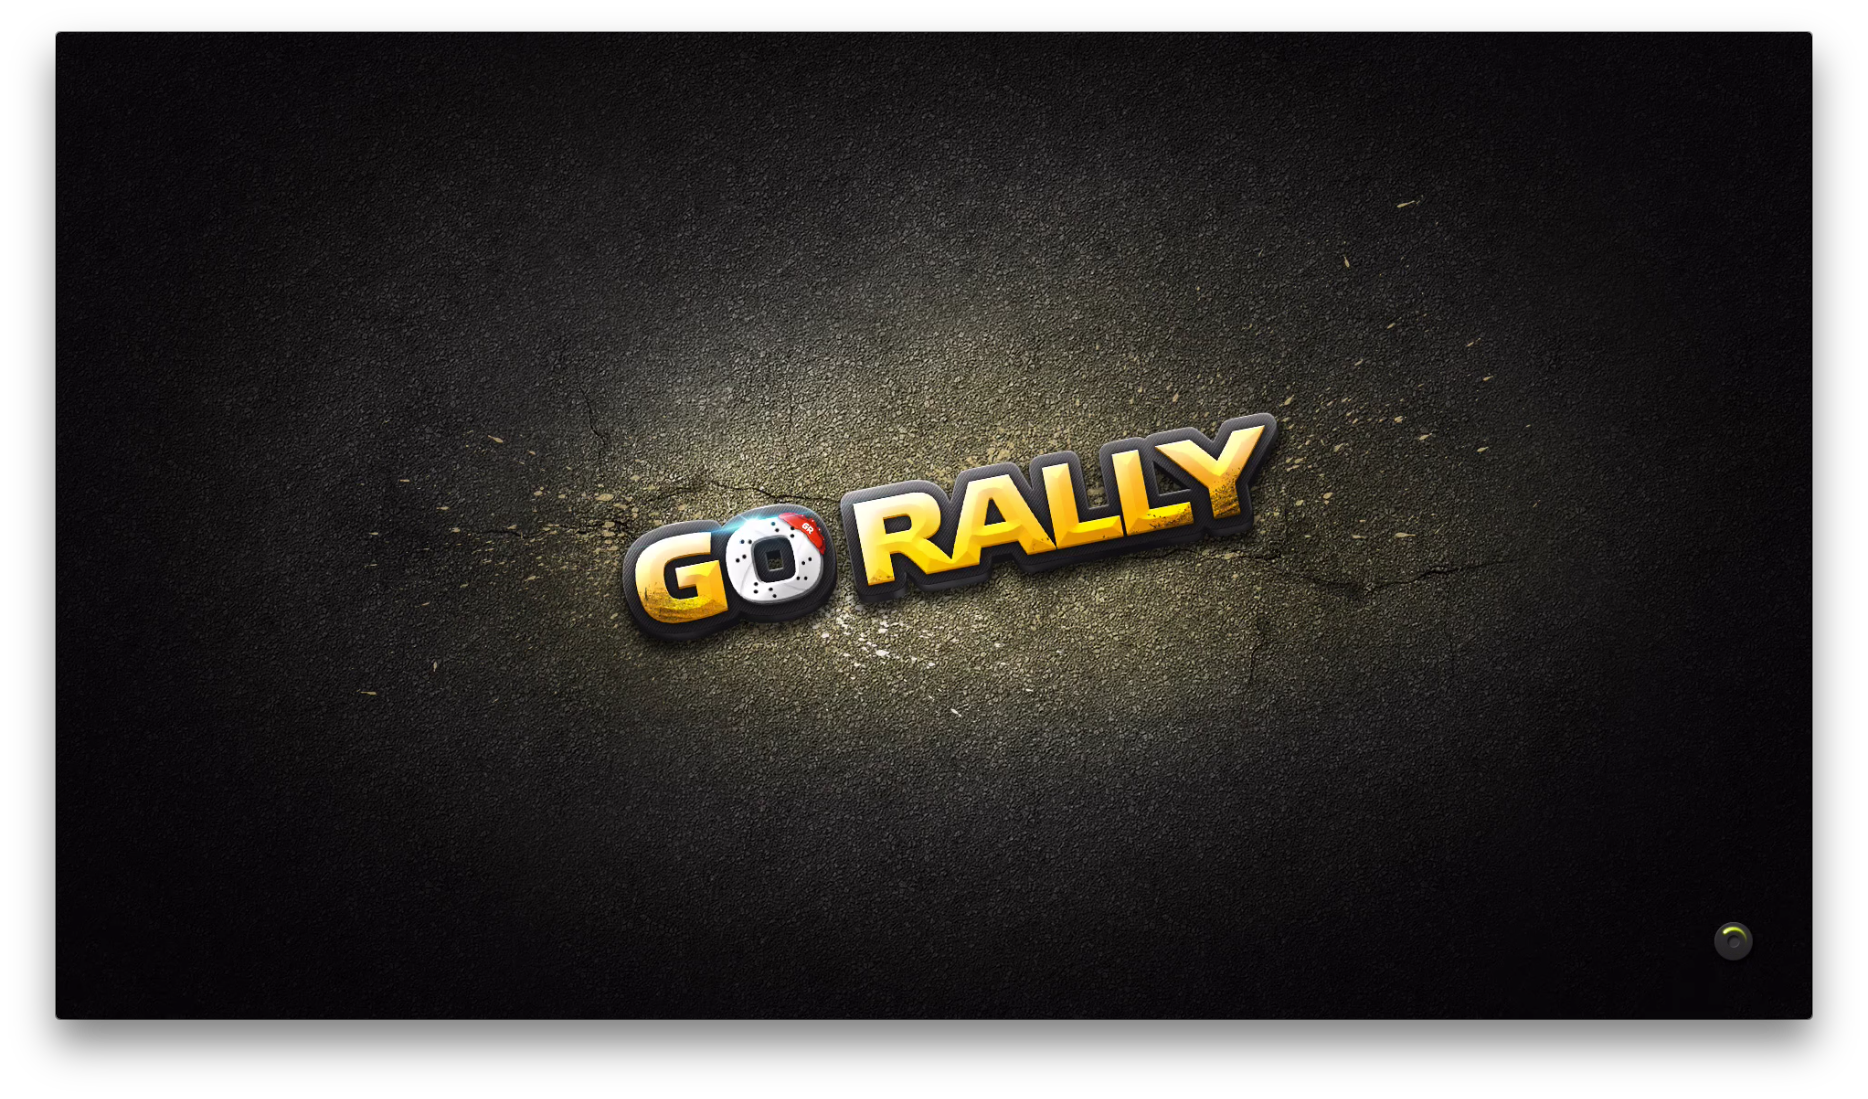 Apple TV racing fans can drift and race off-road in Go Rally